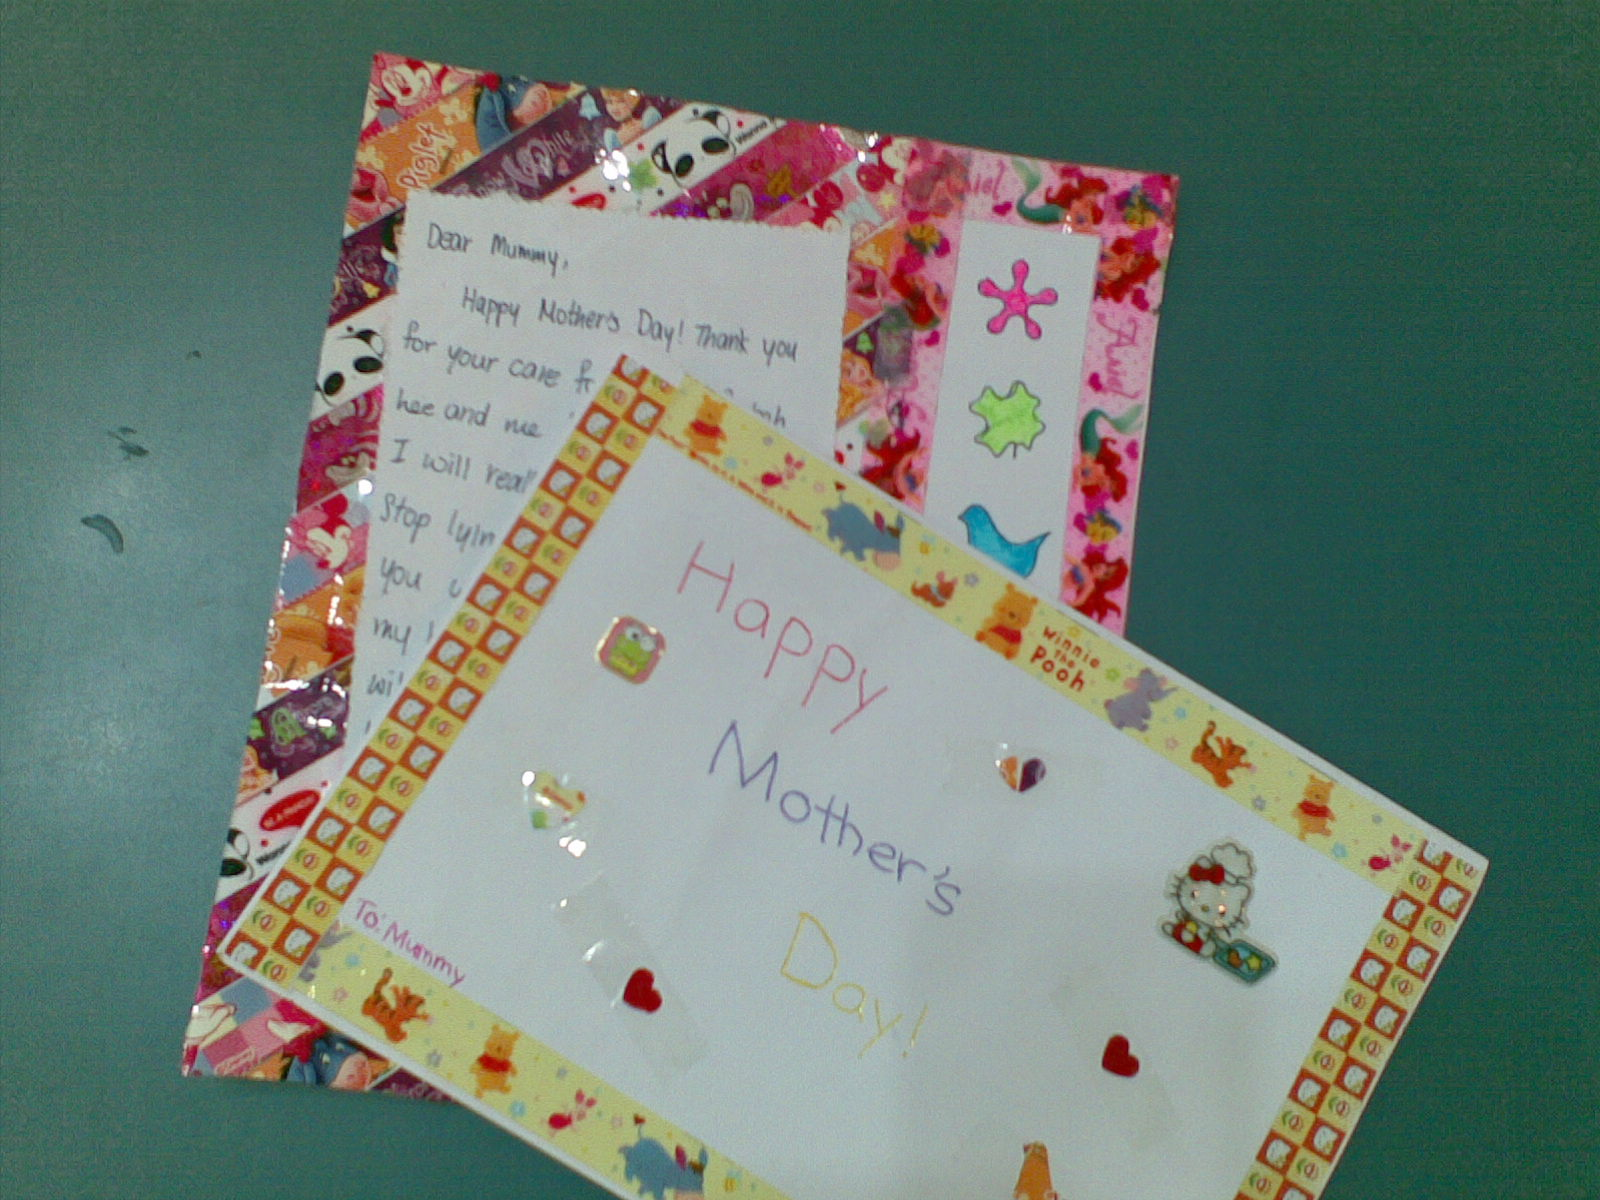 Sarin hairu and fatimah make greeting cards for mothers day sarin and hairu then folded their papers into half as both of them like to create their own folded cards fatimah likes to have her card as a large unfolded kristyandbryce Gallery